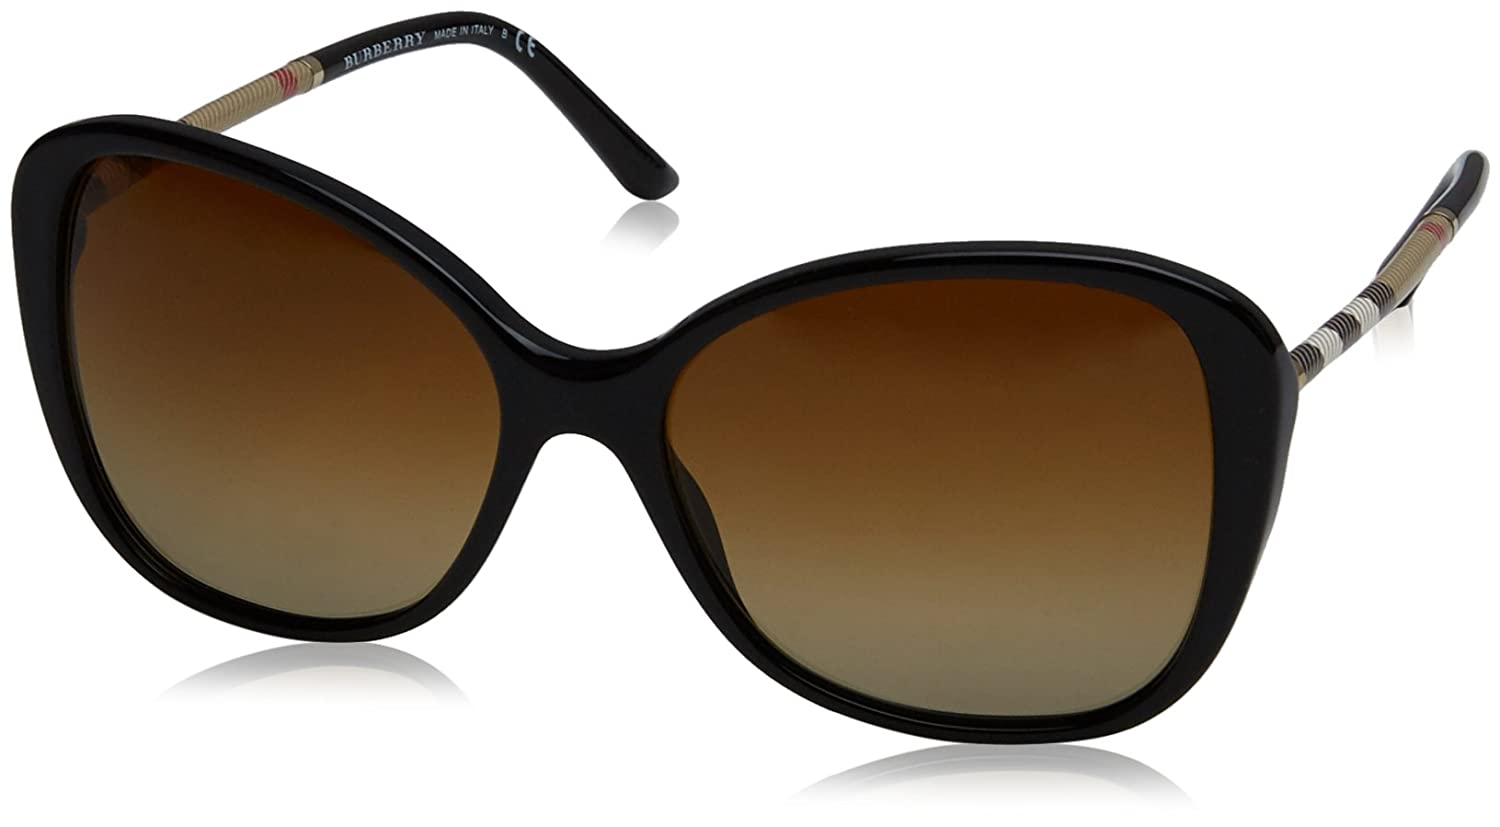 f75be99e6cd0 Amazon.com  Burberry BE4235Q 3001T5 Black BE4235Q Butterfly Sunglasses  Polarised Lens Categ  Burberry  Clothing